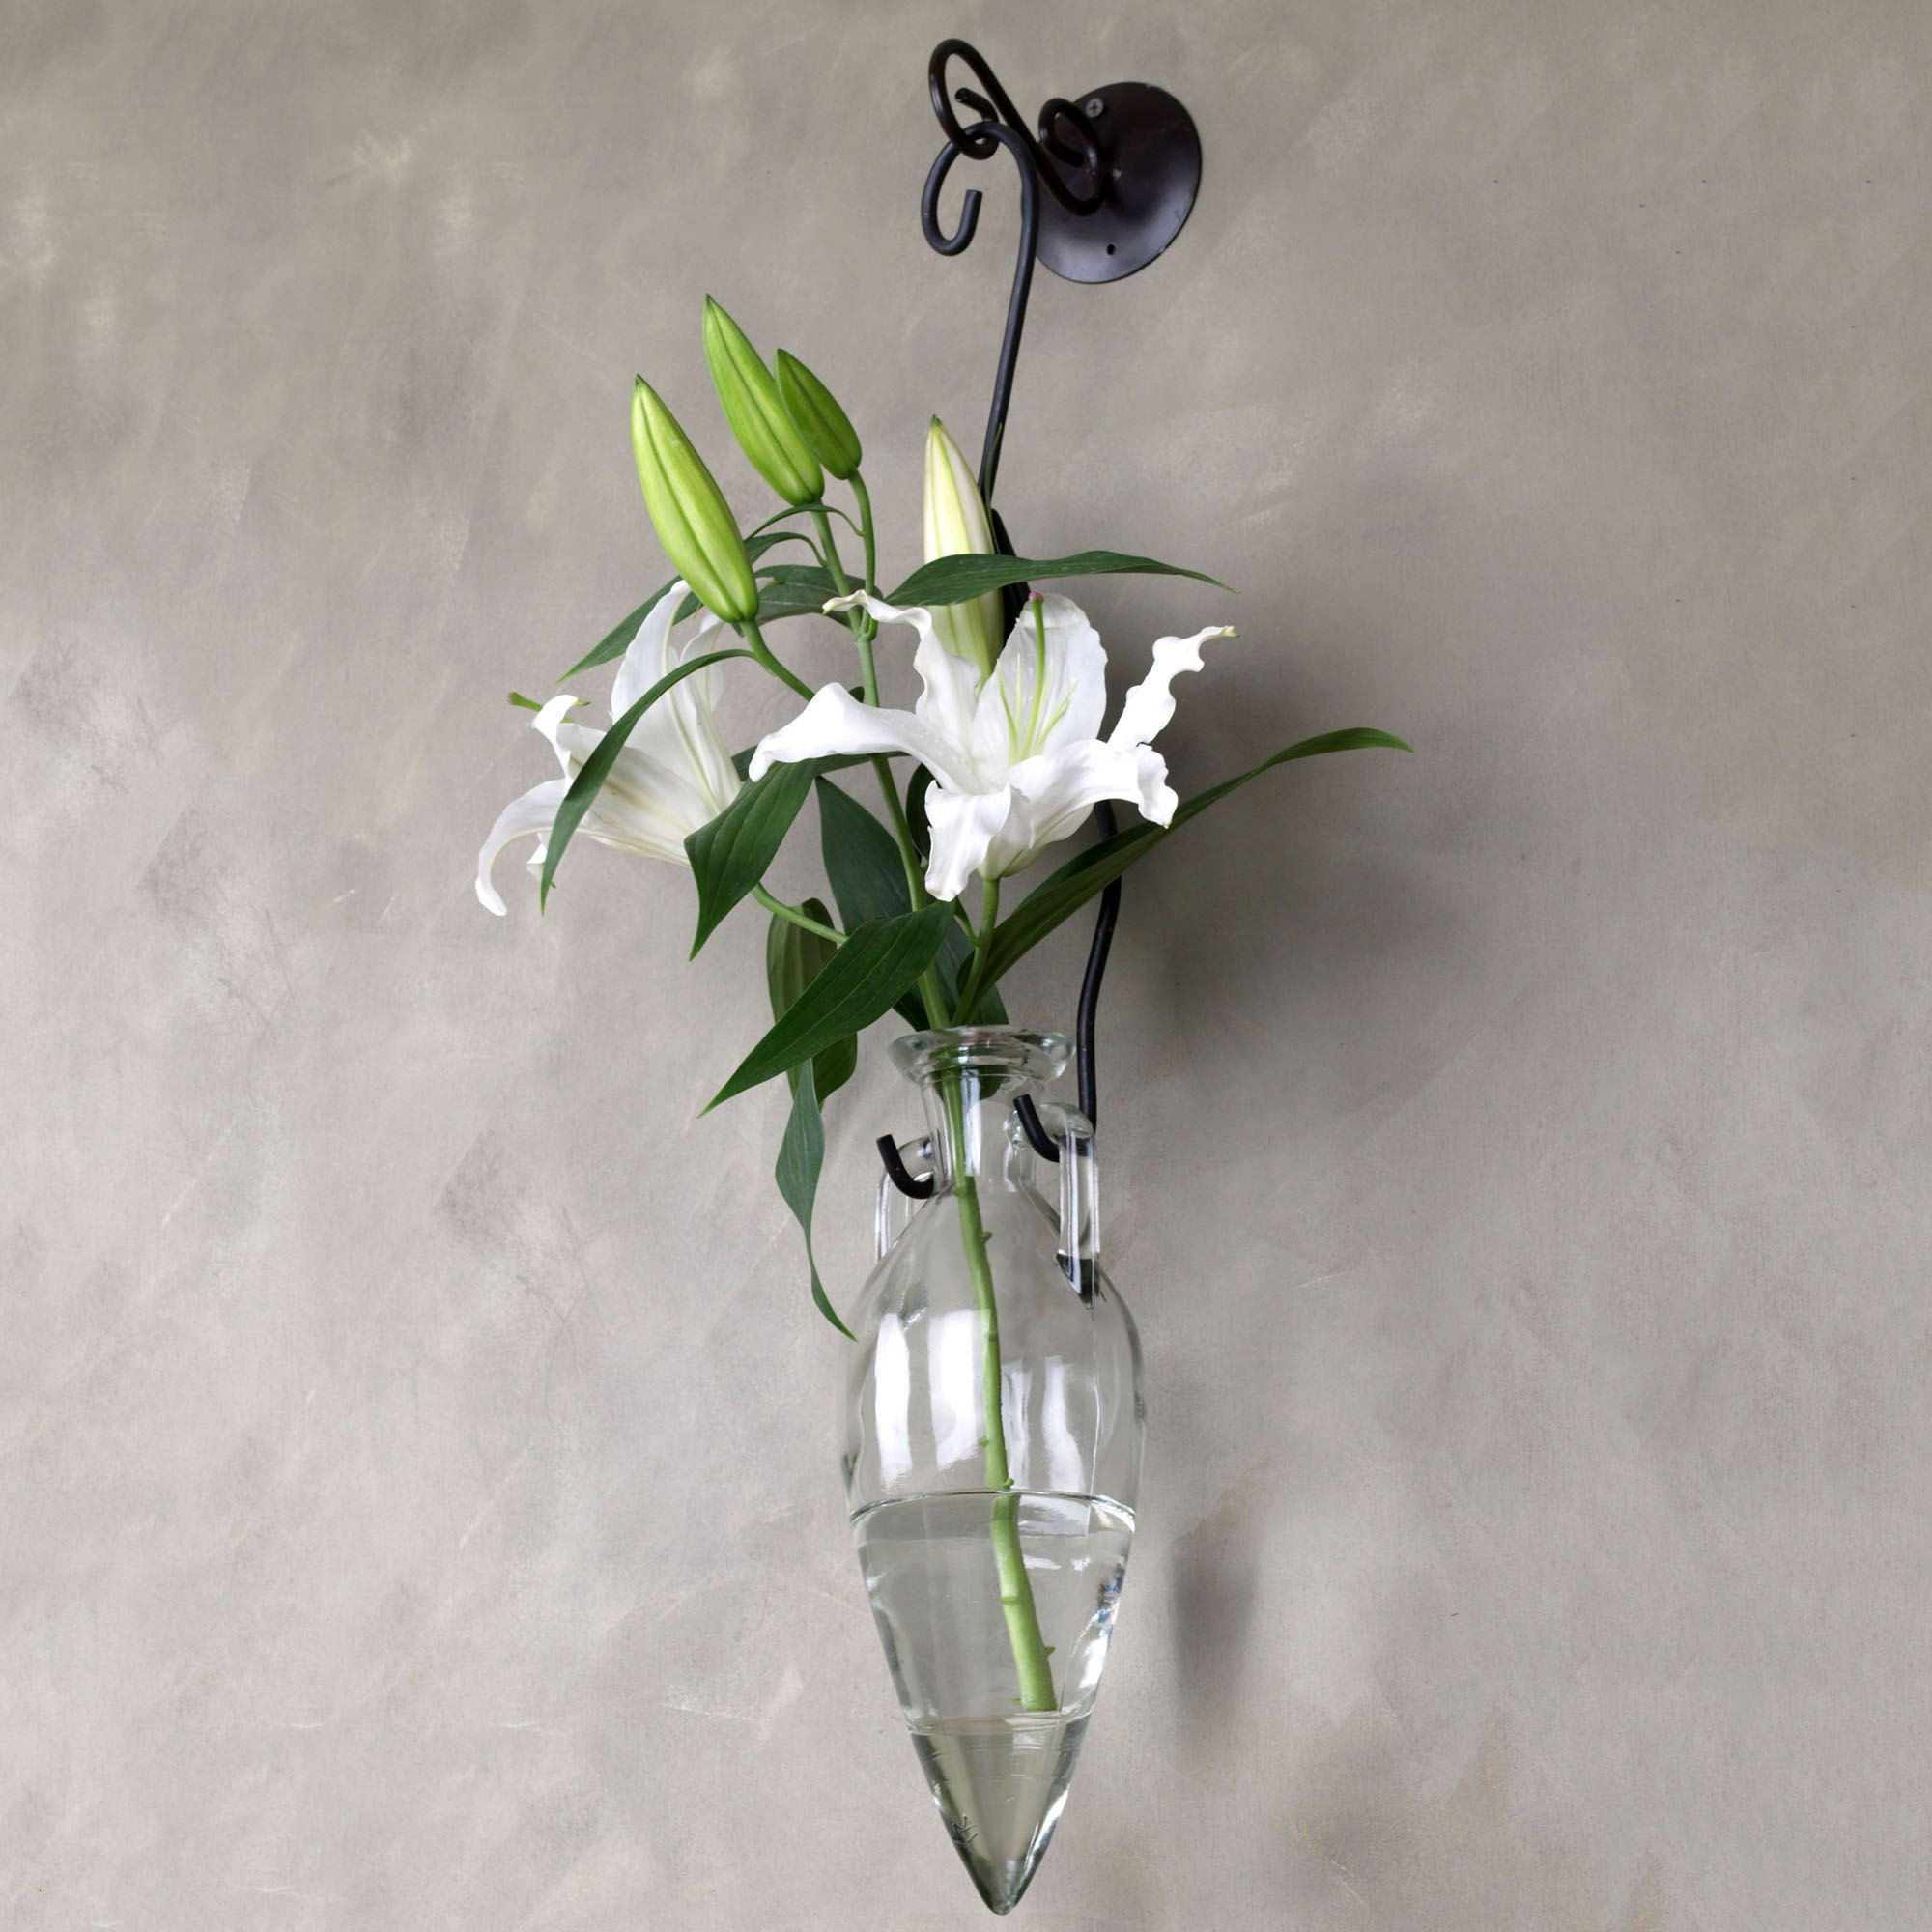 baby blue vase of wall decor hanging 2019 wedding wall decor unique h vases wall regarding wall decor hanging 2019 wedding wall decor unique h vases wall hanging flower vase newspaper